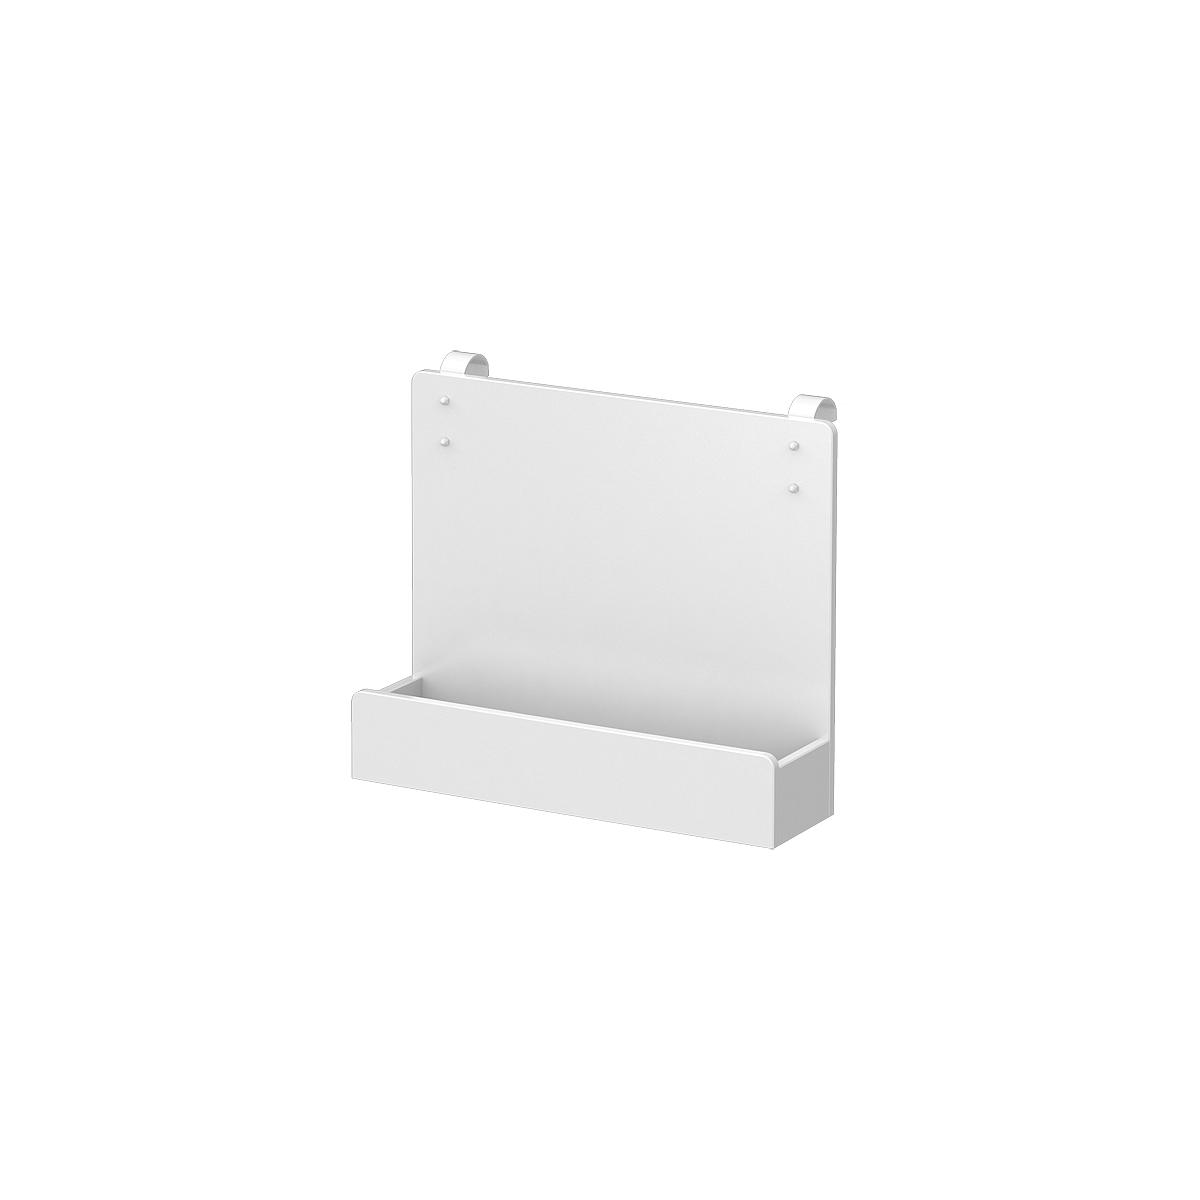 Estante libros Camas CLICKON WHITE Flexa blanco